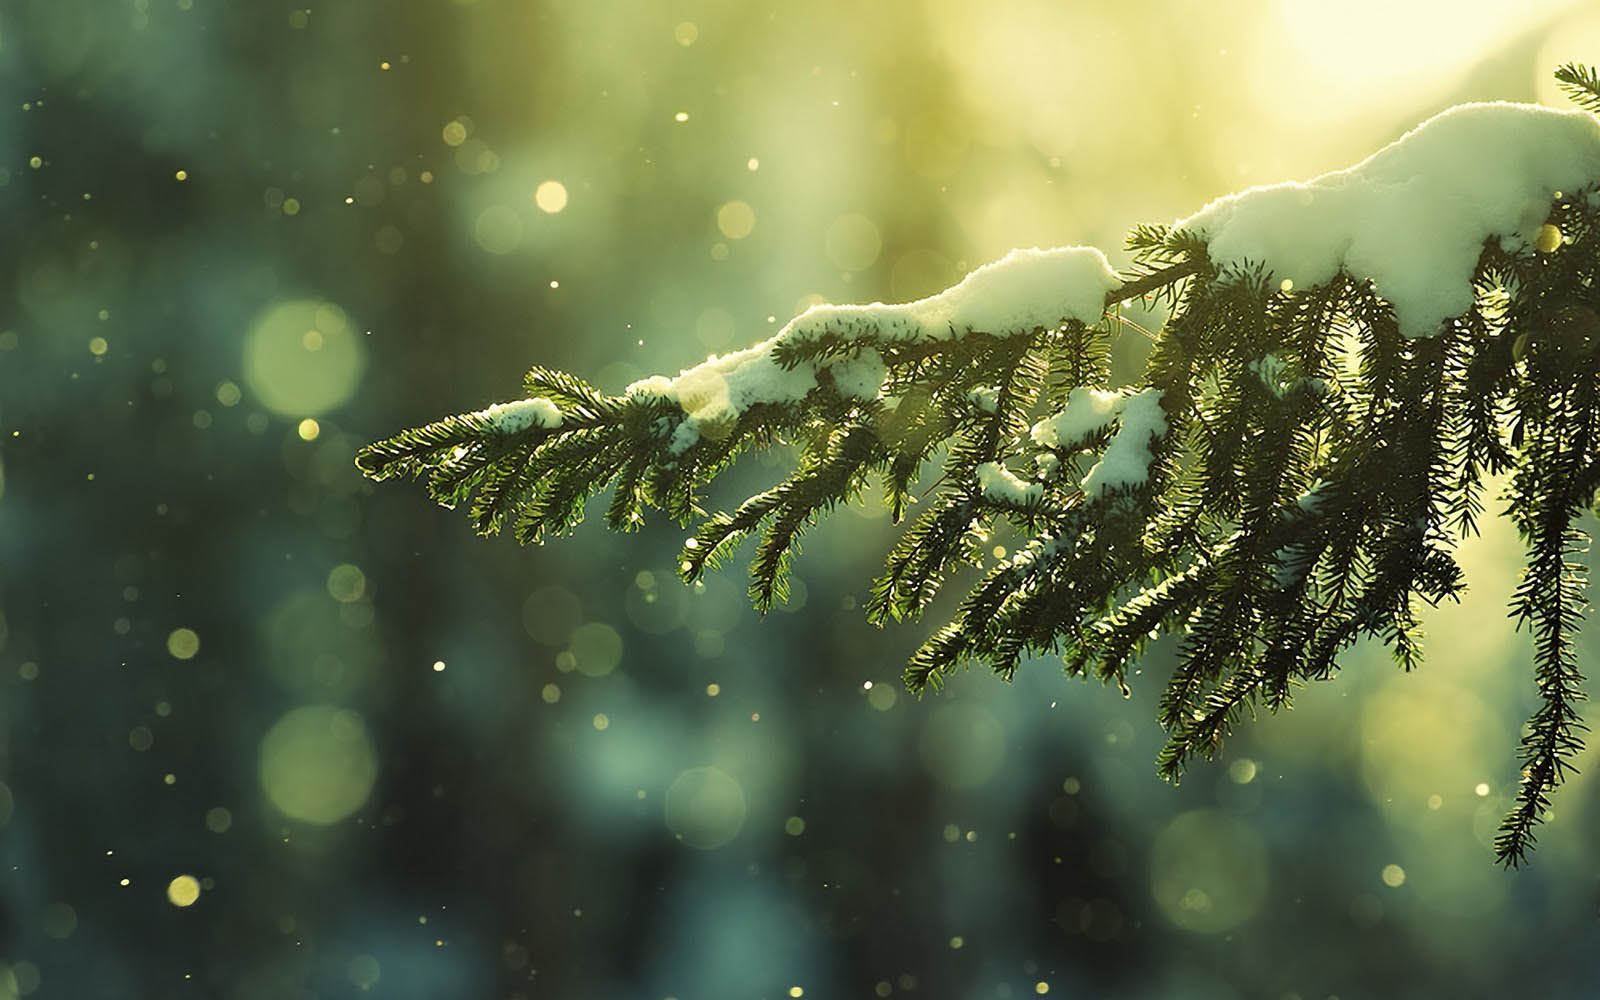 wallpaper: Winter Desktop Wallpapers and Backgrounds